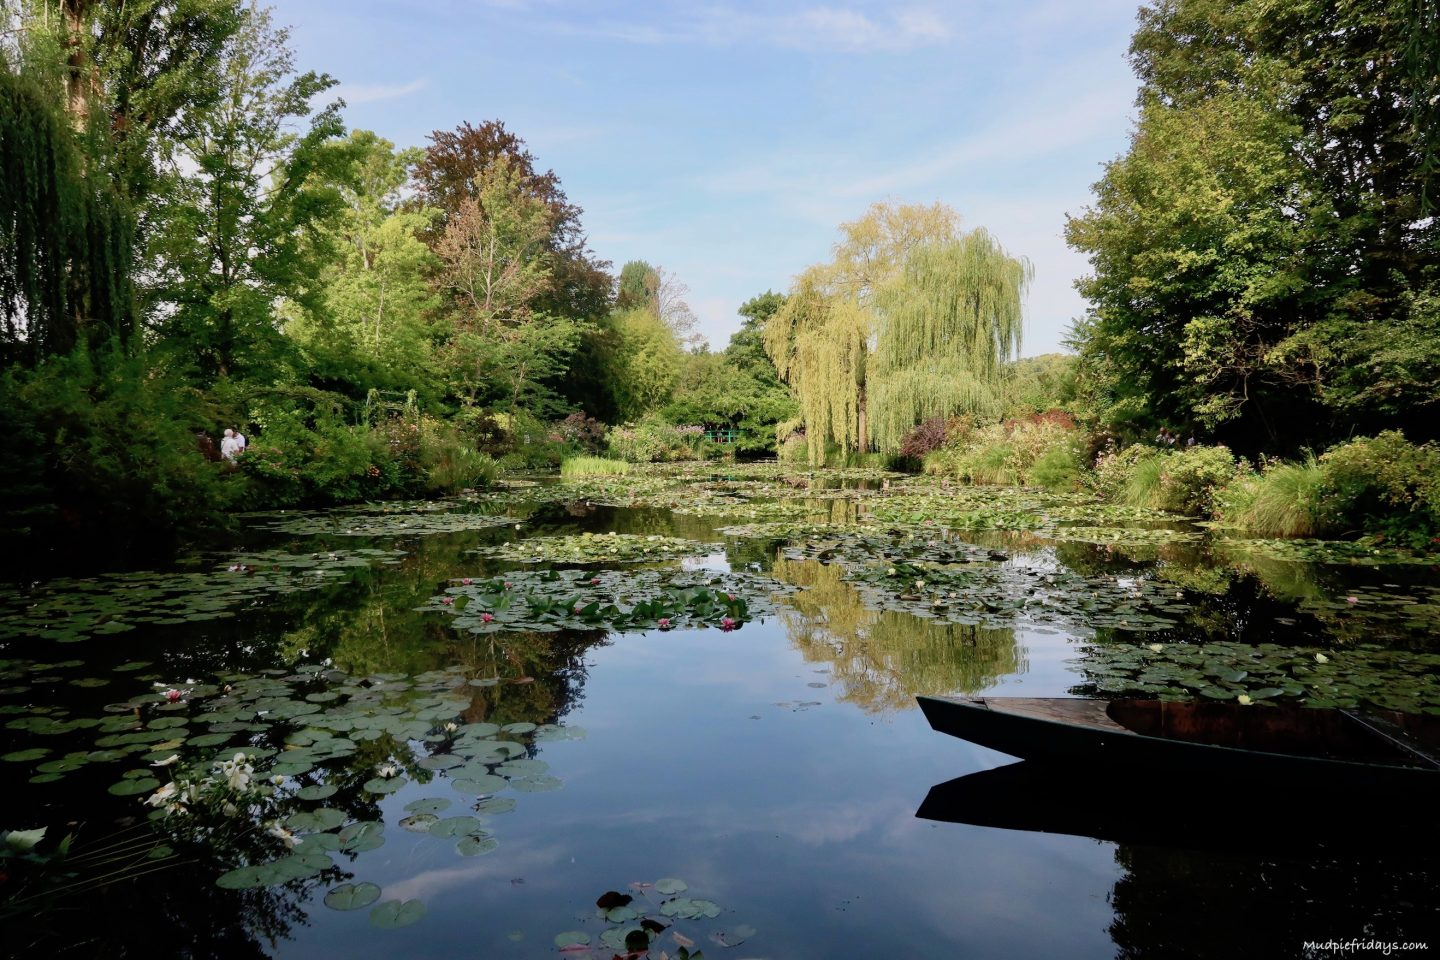 Our trip to Monet's water lilies